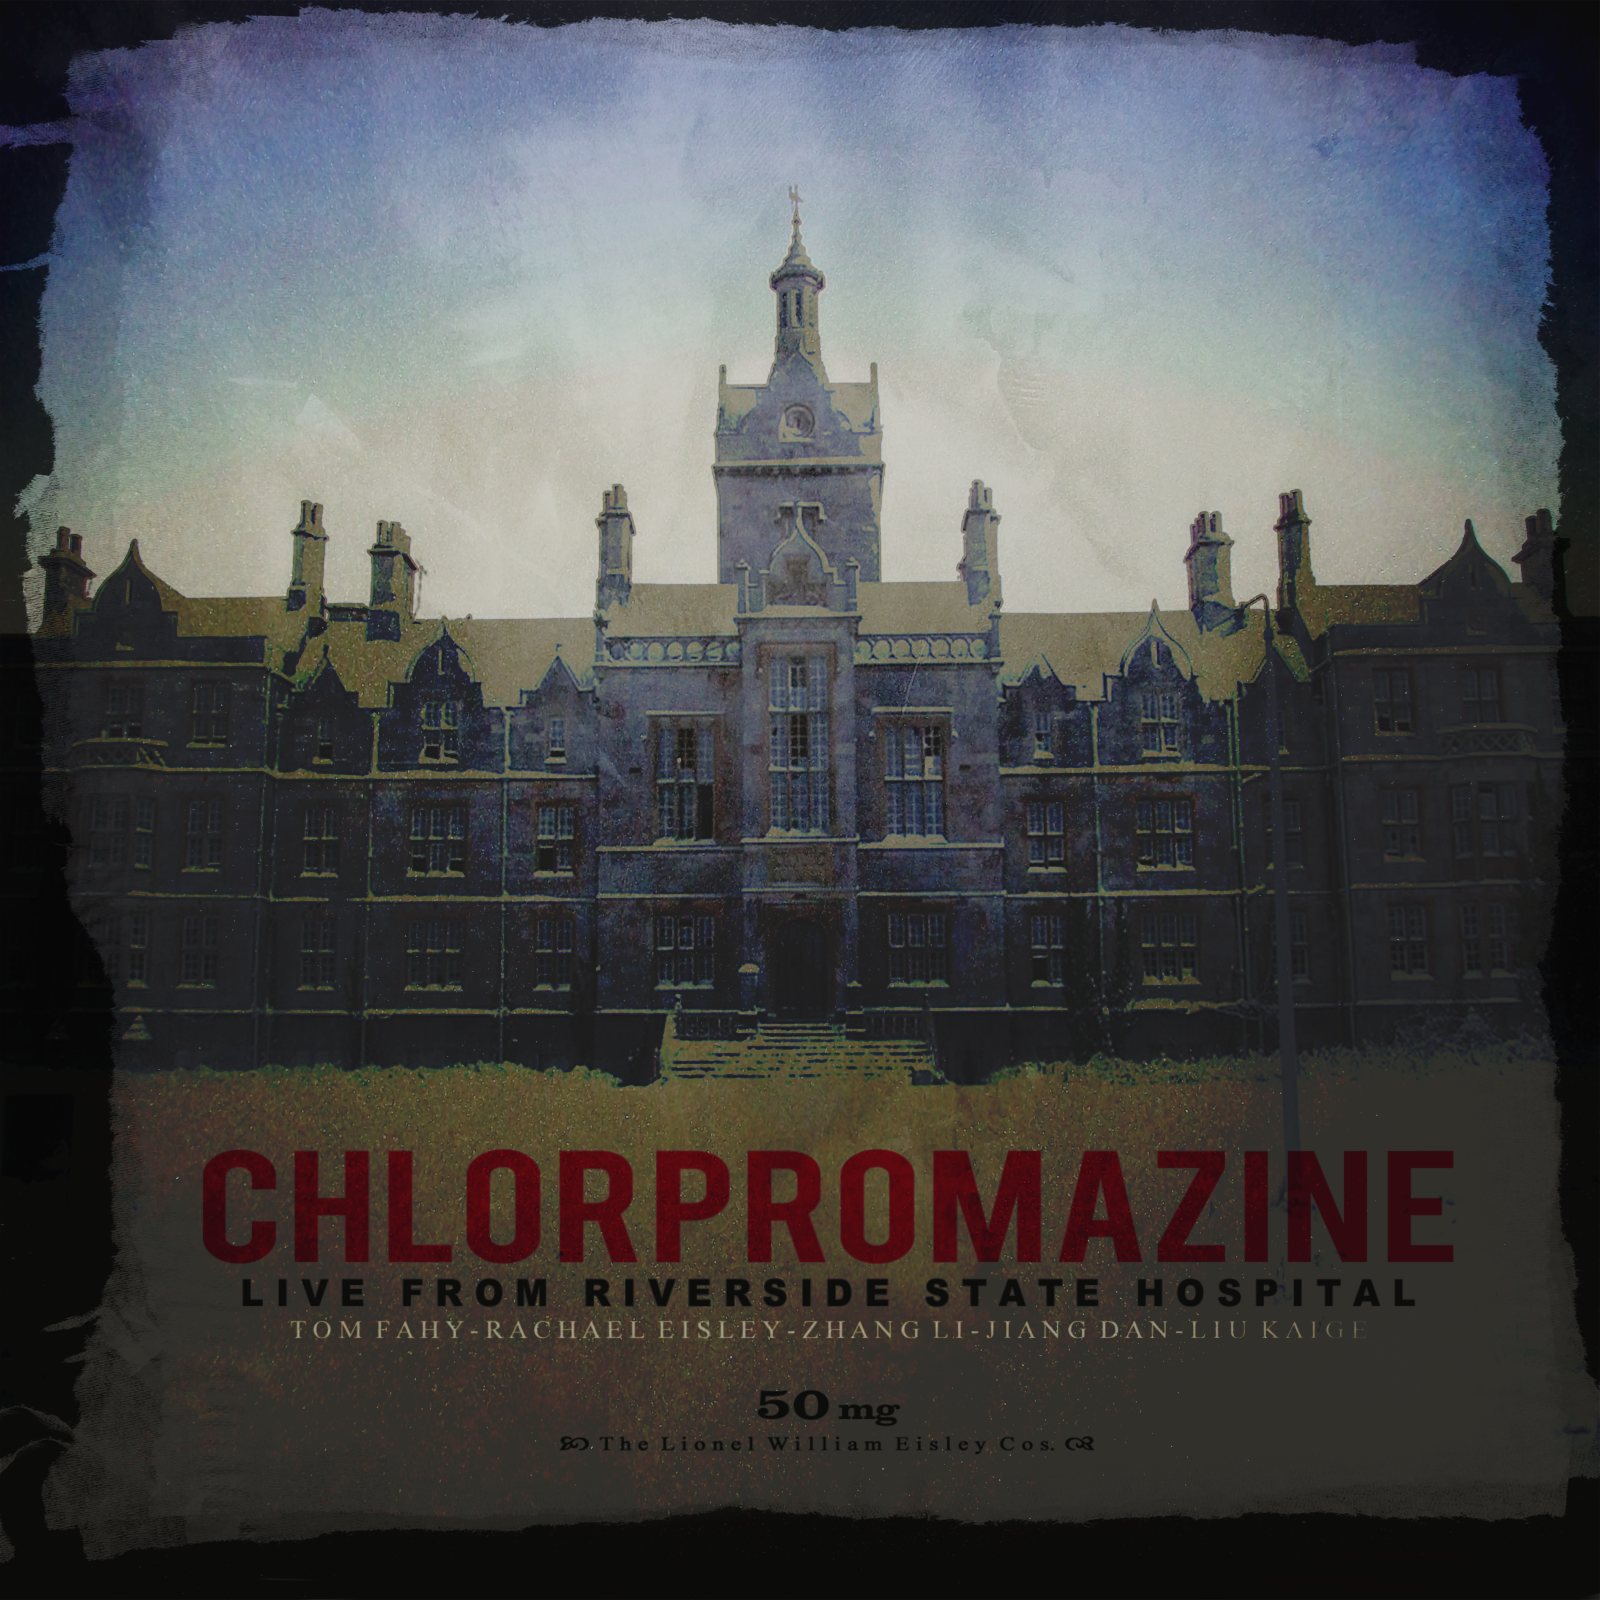 Chlorpromazine (Live from Riverside State Hospital) by Tom Fahy